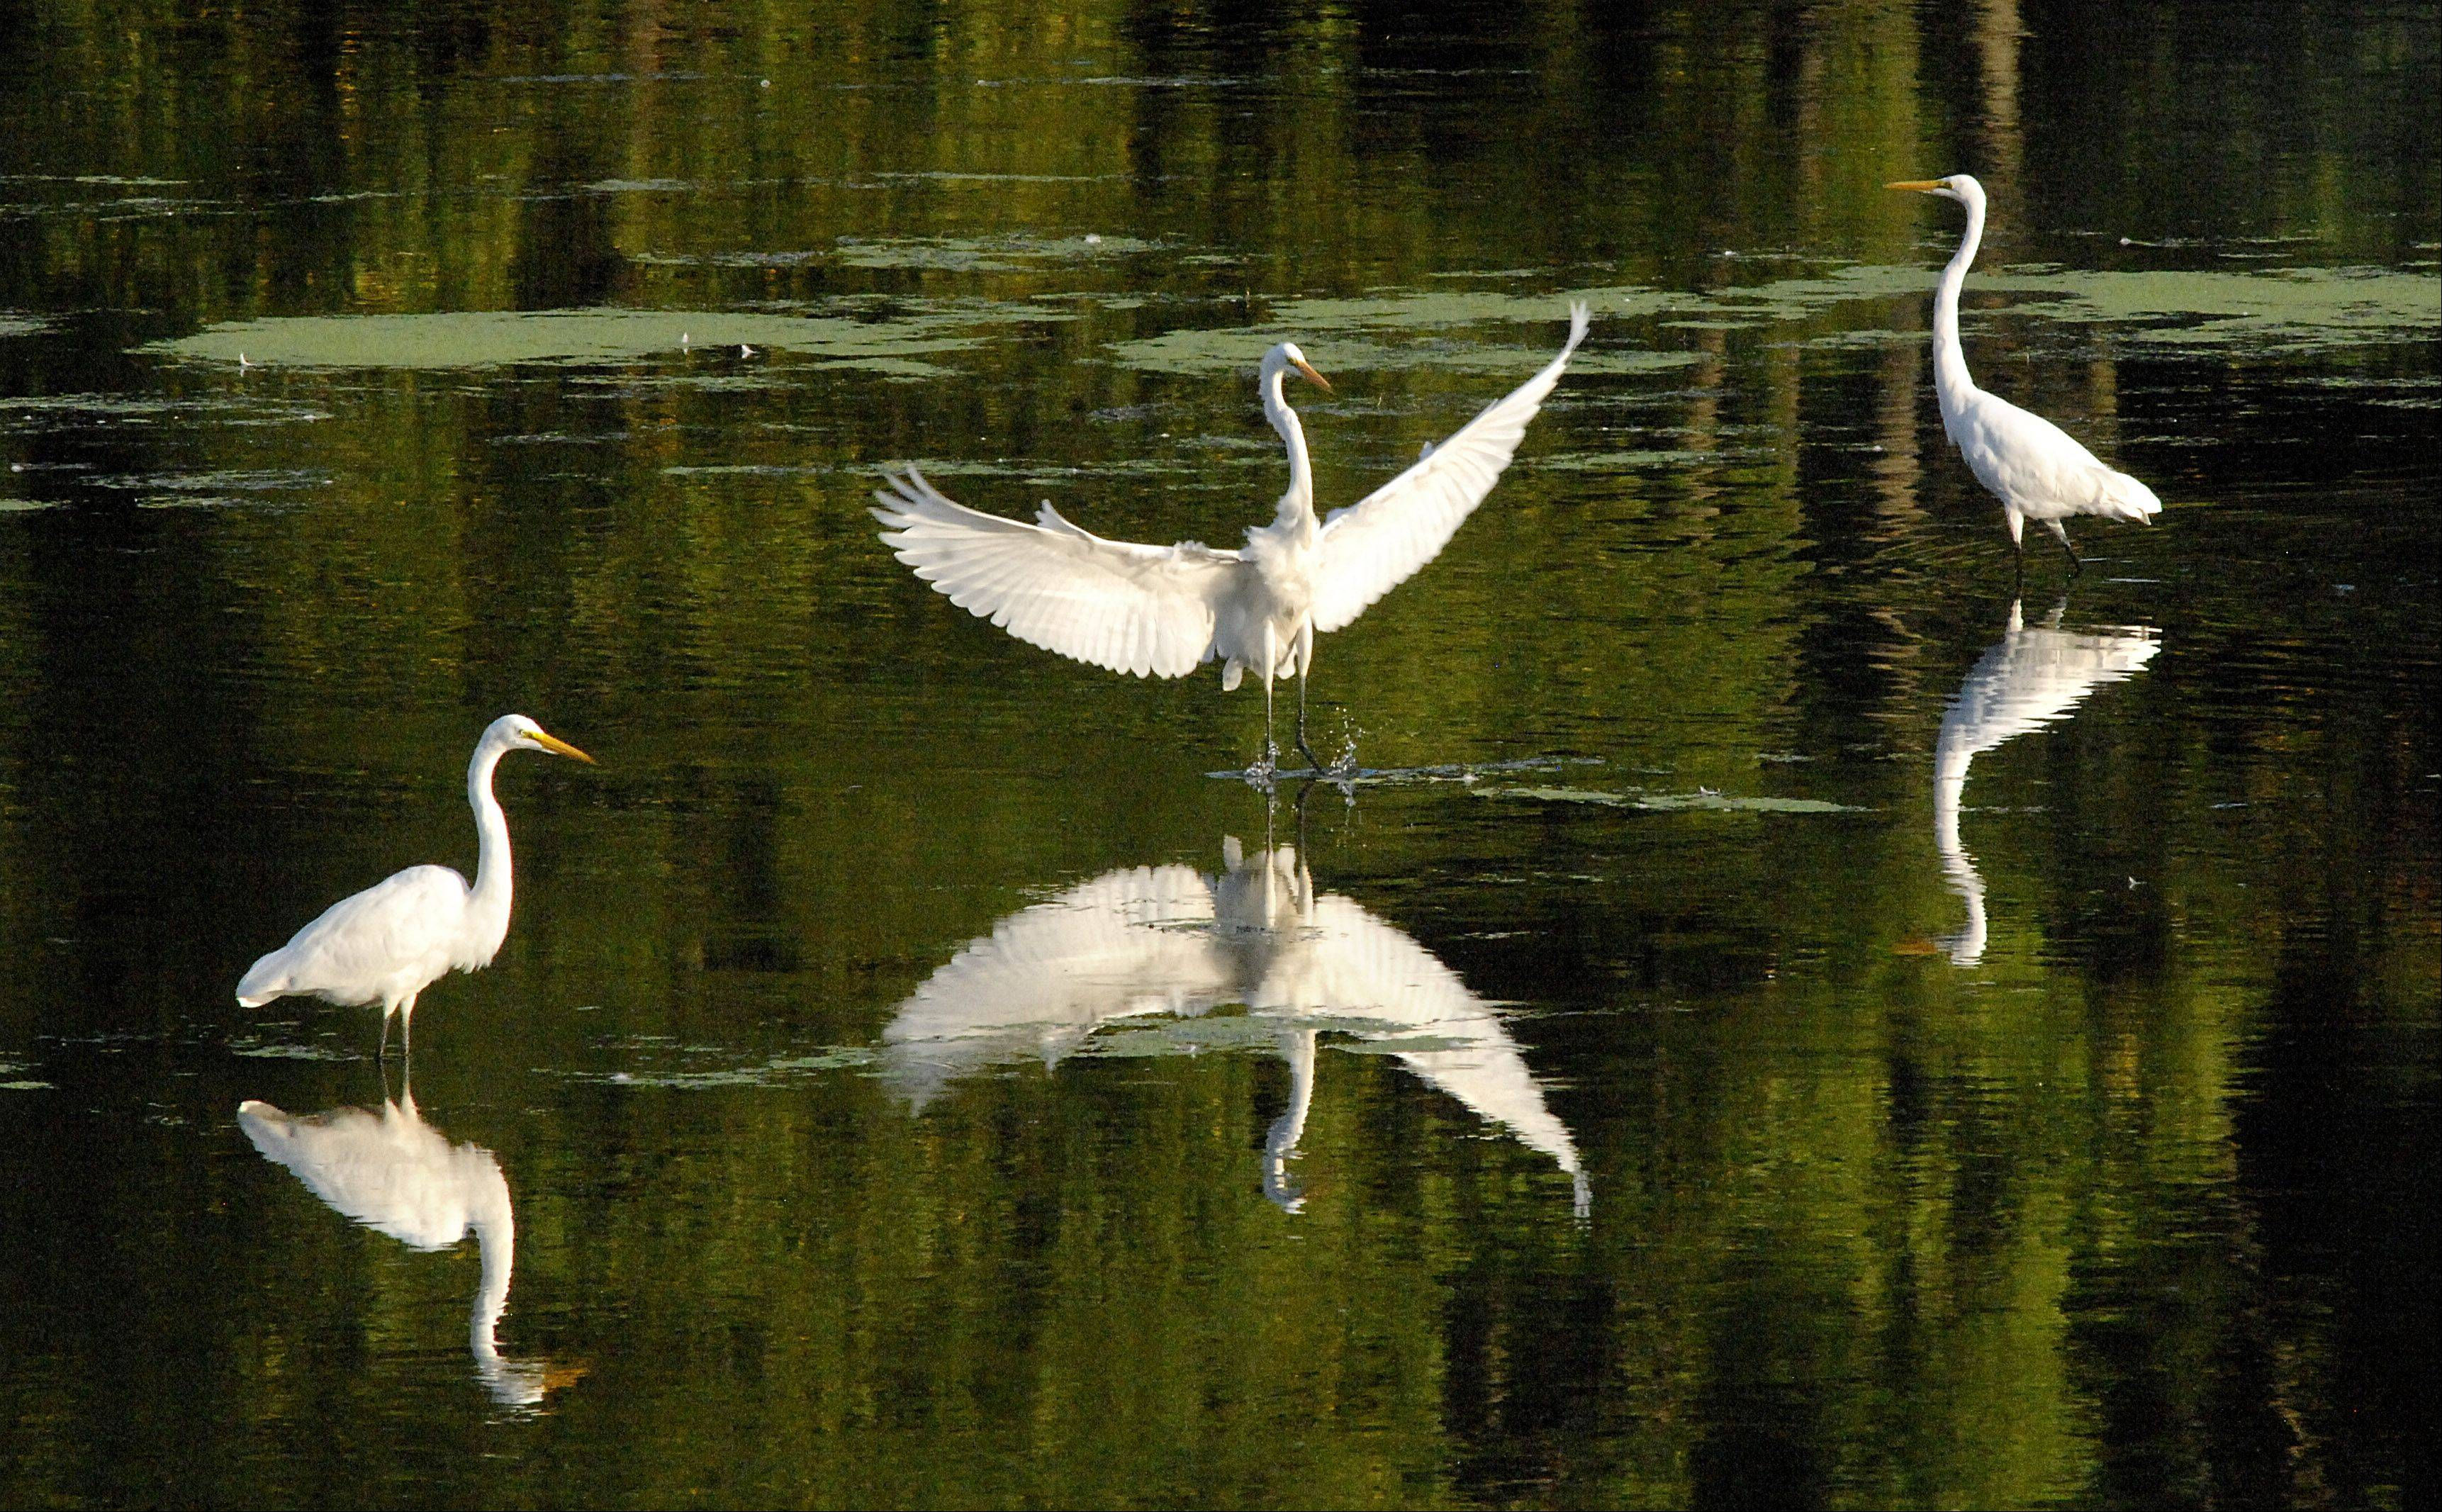 Laura Stoecker/lstoecker@dailyherald.com An egret flies in to form a cluster of the water-wading birds near Tekakwitha Woods in St. Charles at sunset. Low water levels have great egrets and great blue herons gathering in large groups to feed.